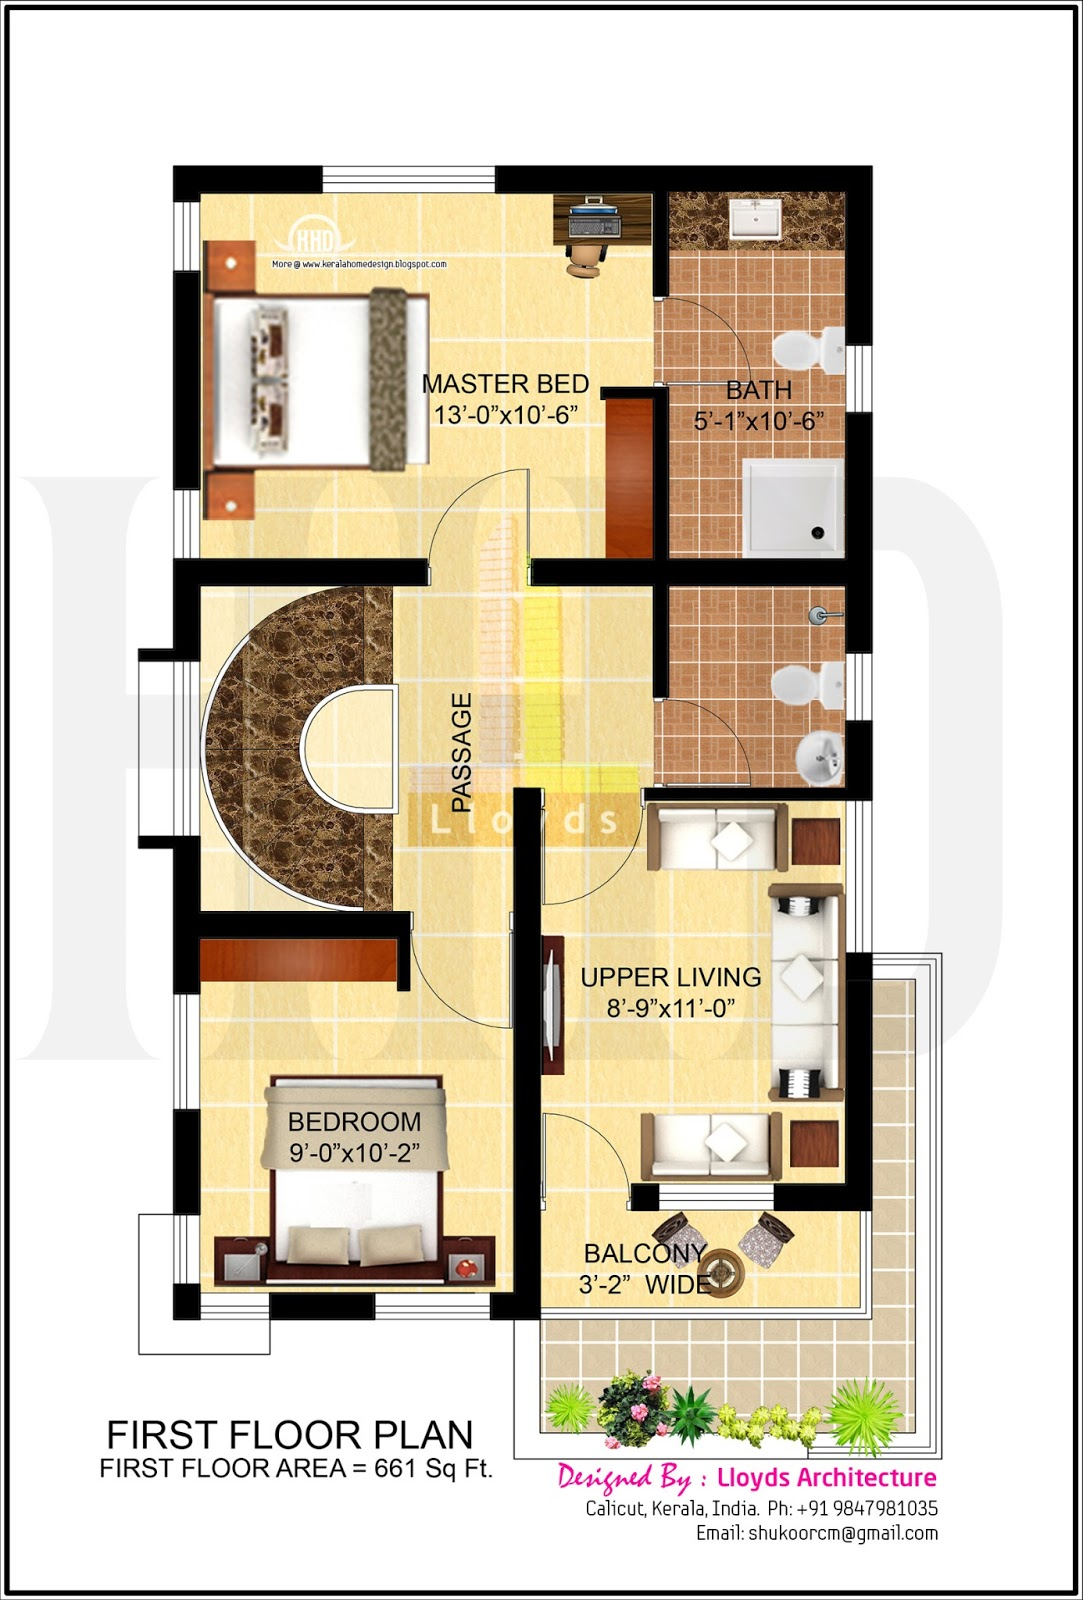 4 bedroom house plan in less than 3 cents kerala home for 4 bedroom 3d house plans